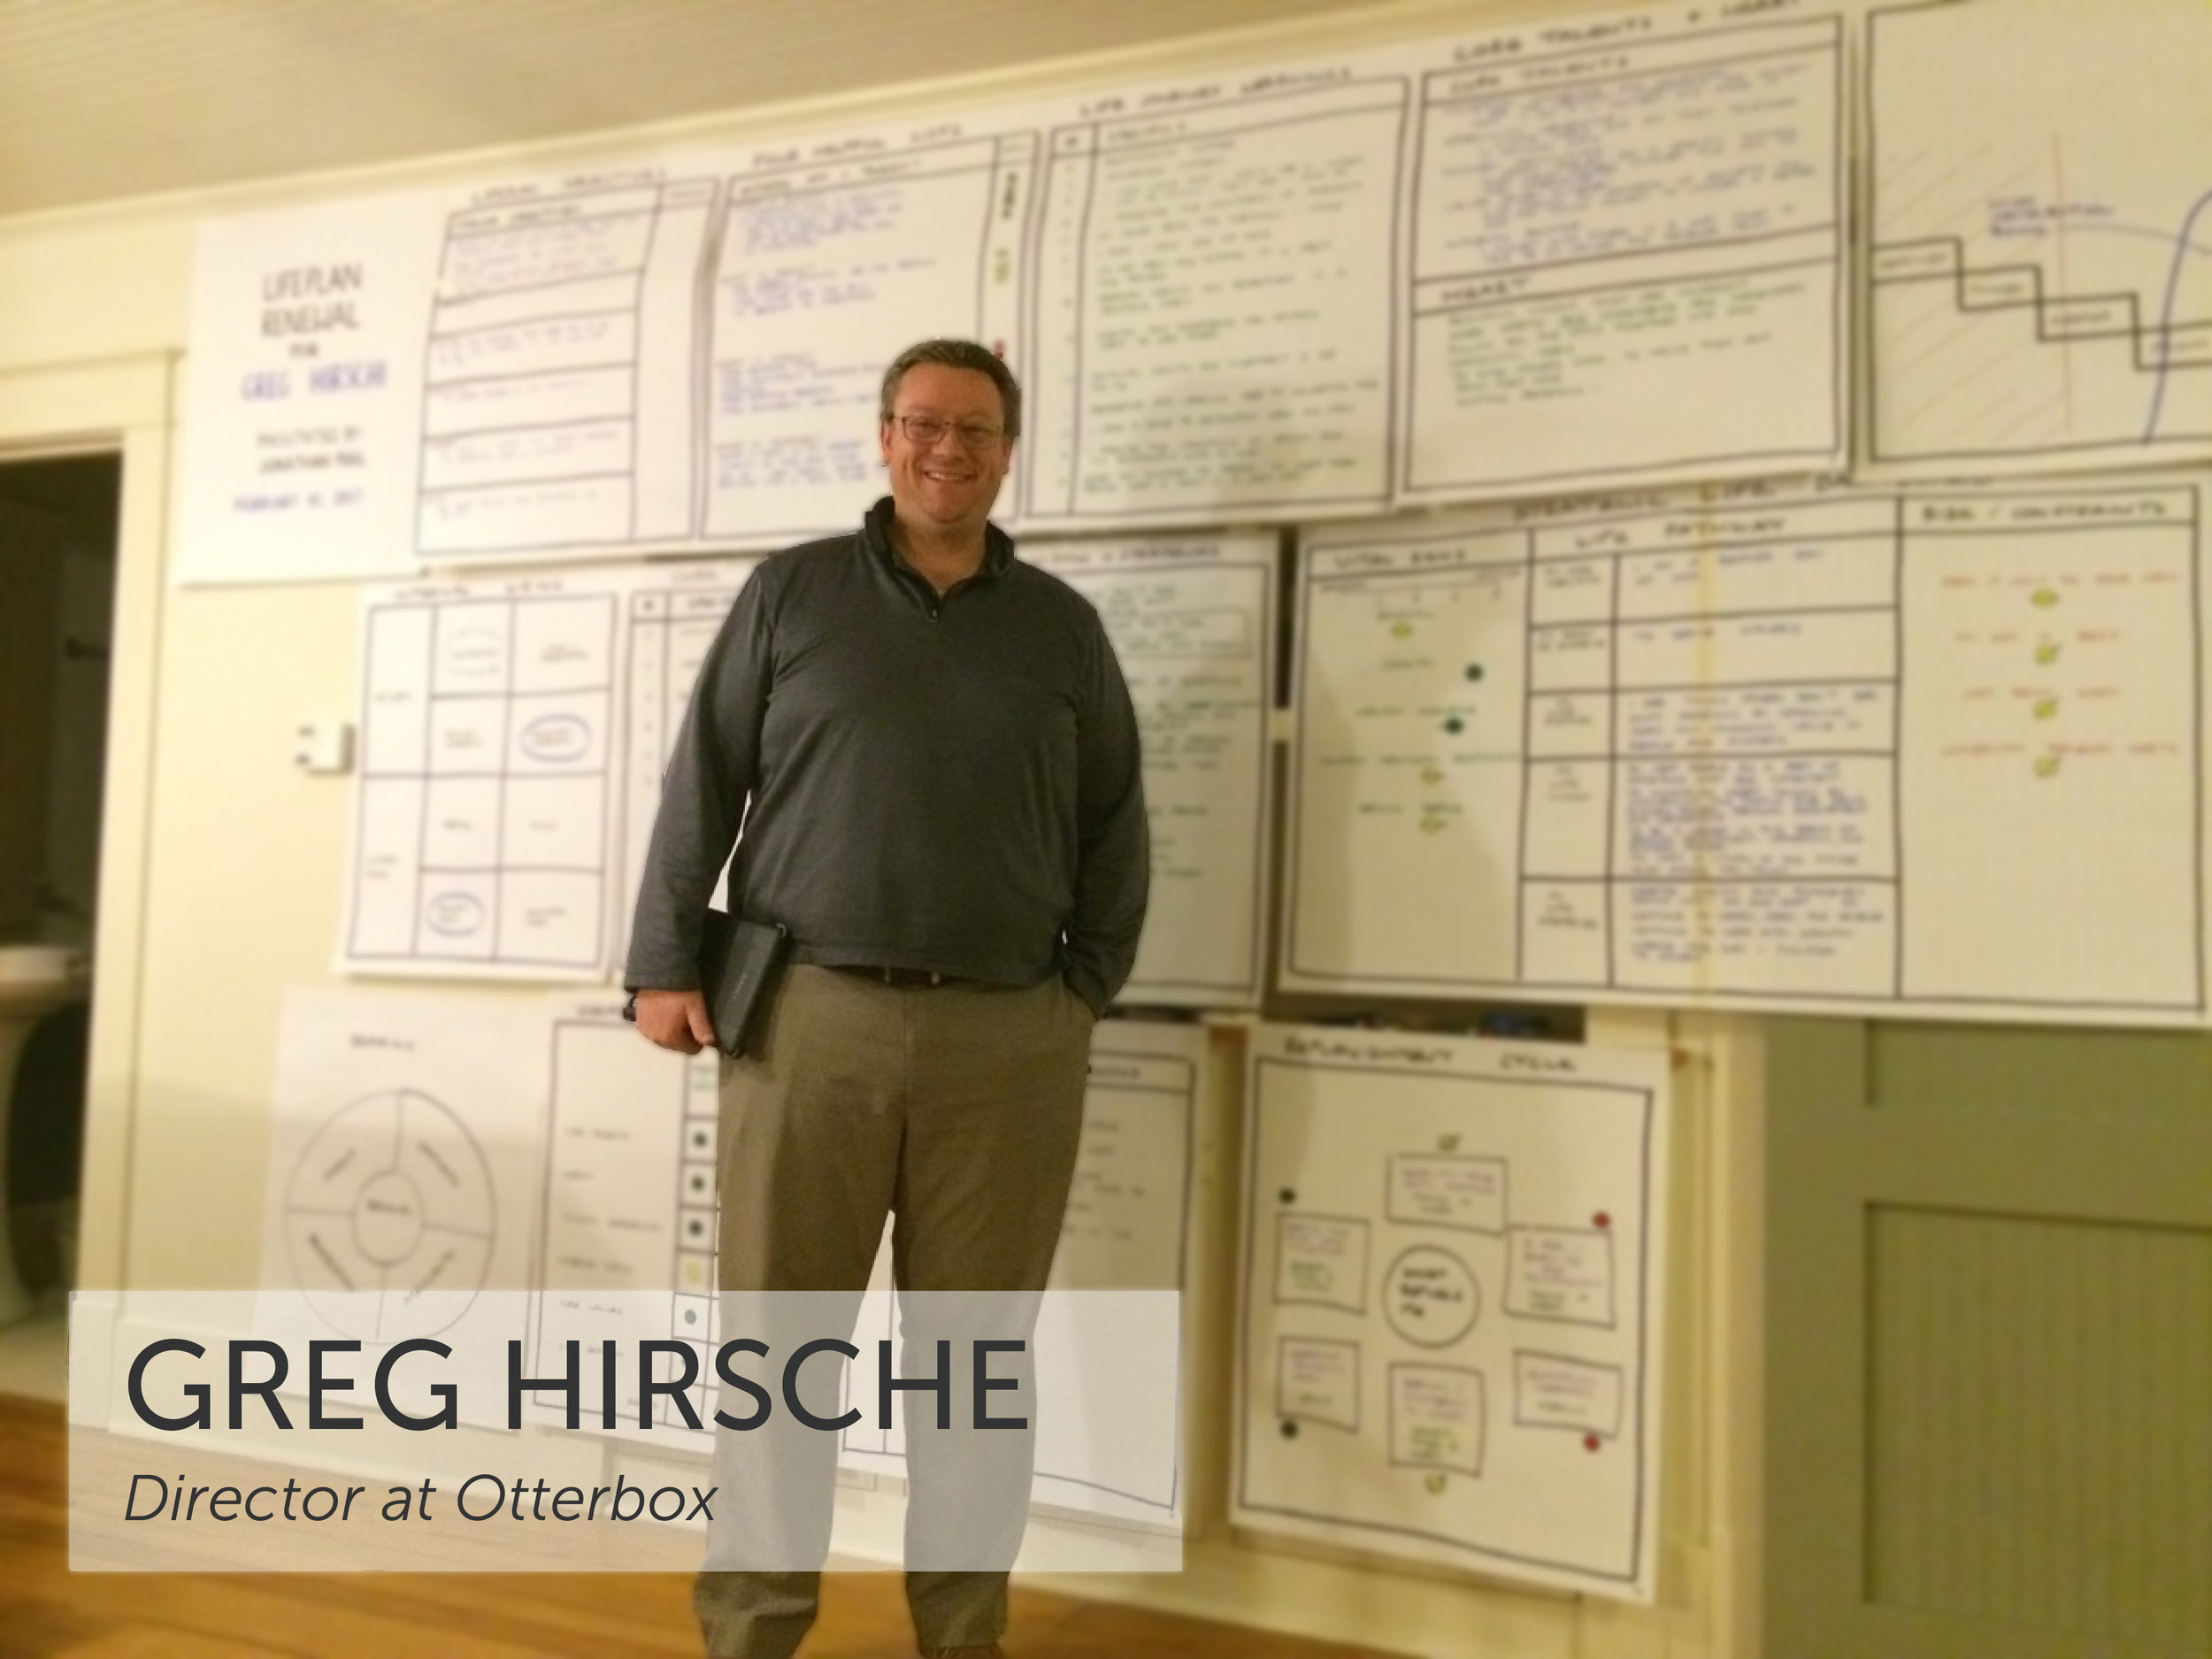 Greg Hirsche with name.jpg